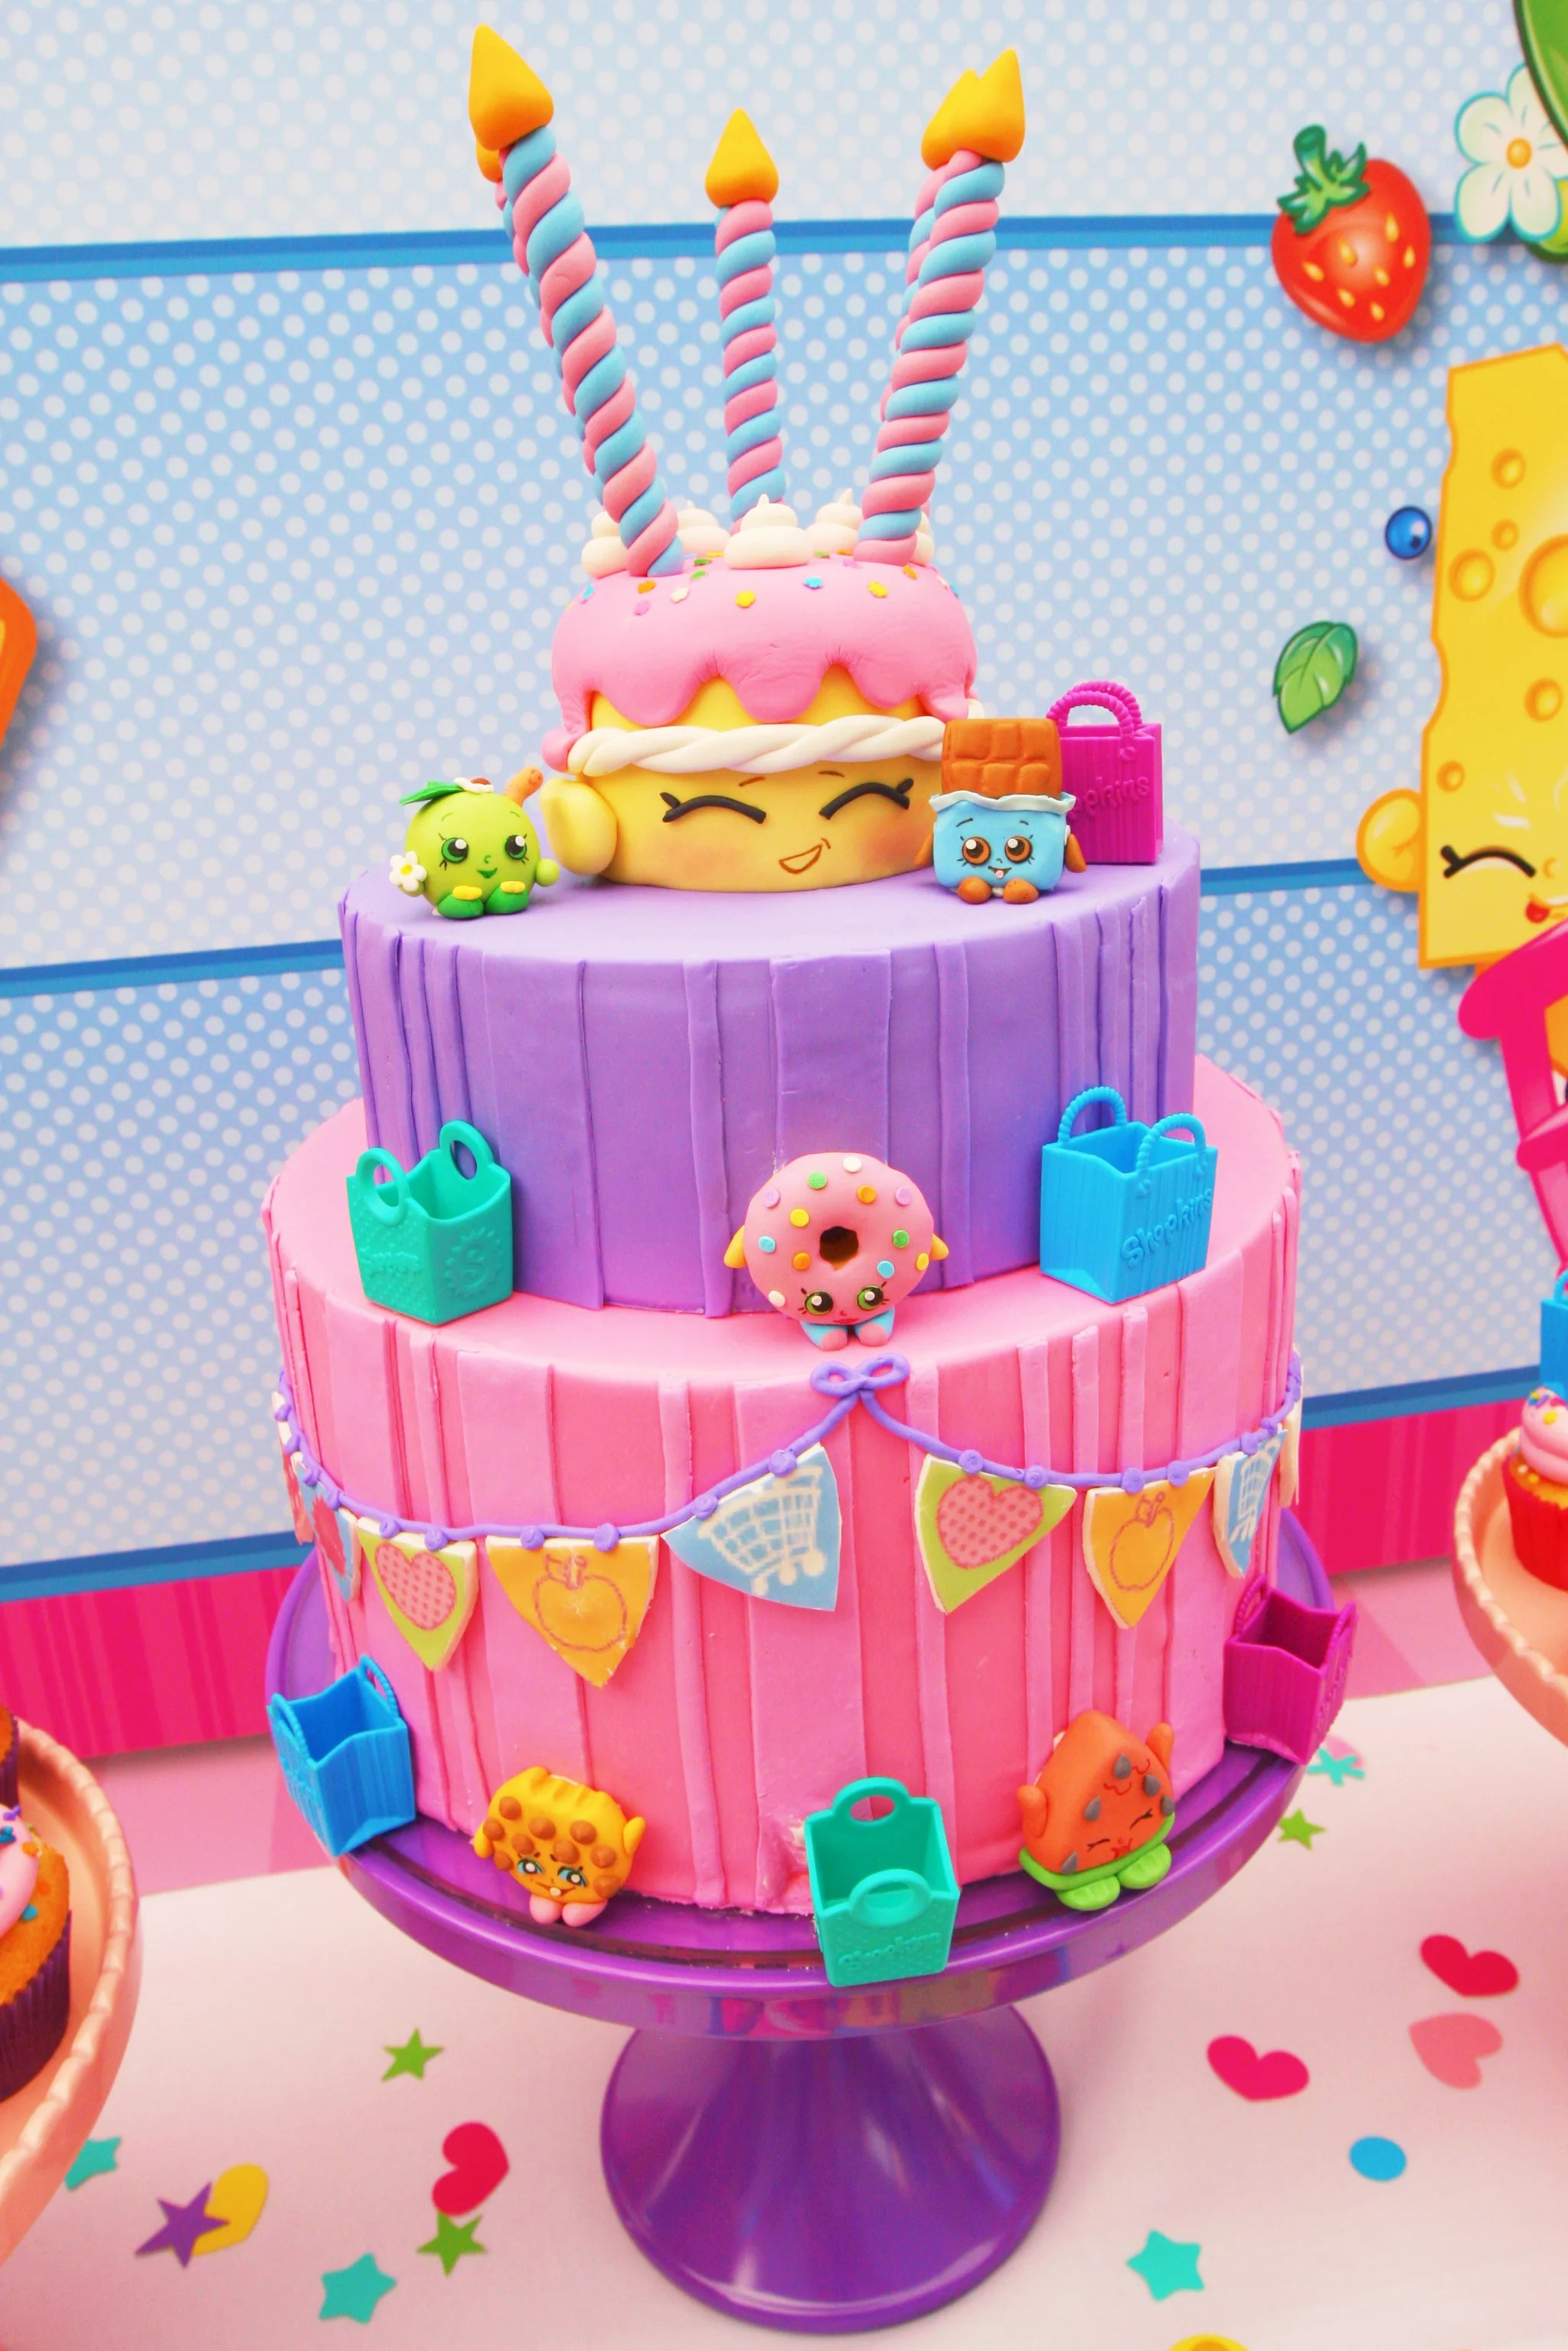 Baby Toddlers Kids Parenting This Shopkins Birthday Party Puts All Others To Shame Popsugar Family Photo 35